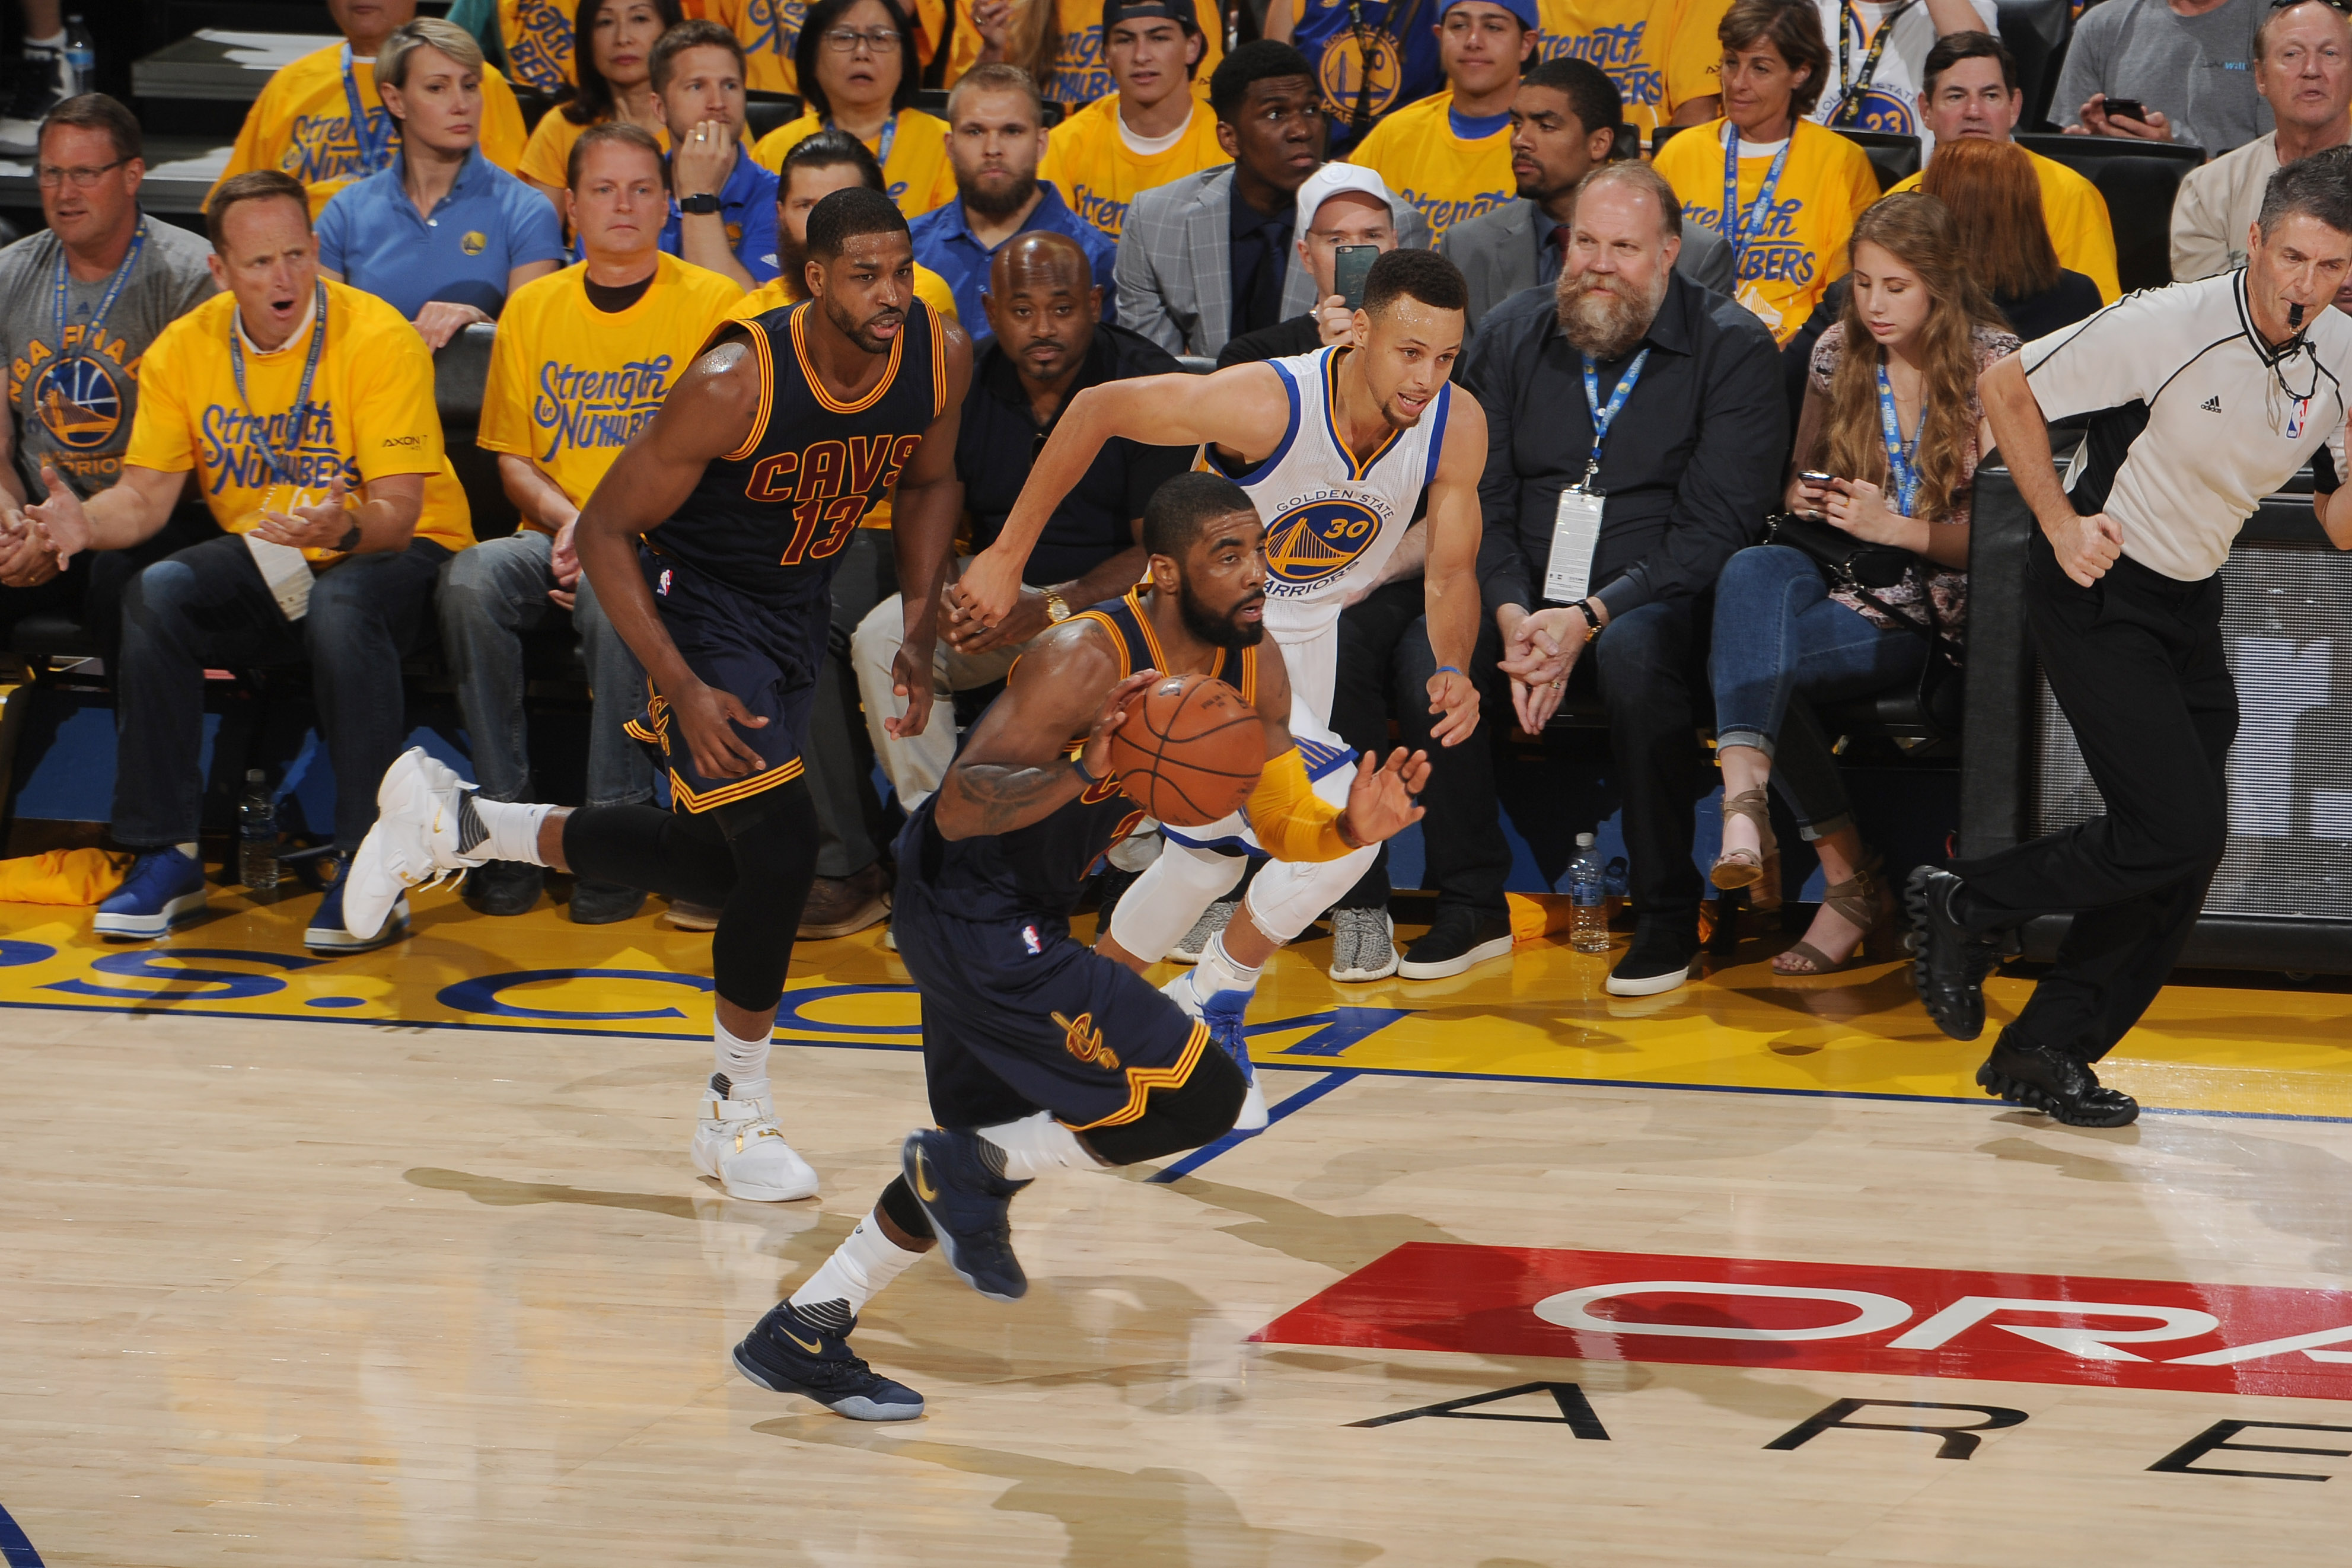 OAKLAND, CA - JUNE 5: J.R. Smith #5 of the Cleveland Cavaliers drives to the basket against the Golden State Warriors during Game Two of the 2016 NBA Finals on June 5, 2016 at ORACLE Arena in Oakland, California. (Photo by Noah Graham/NBAE via Getty Image